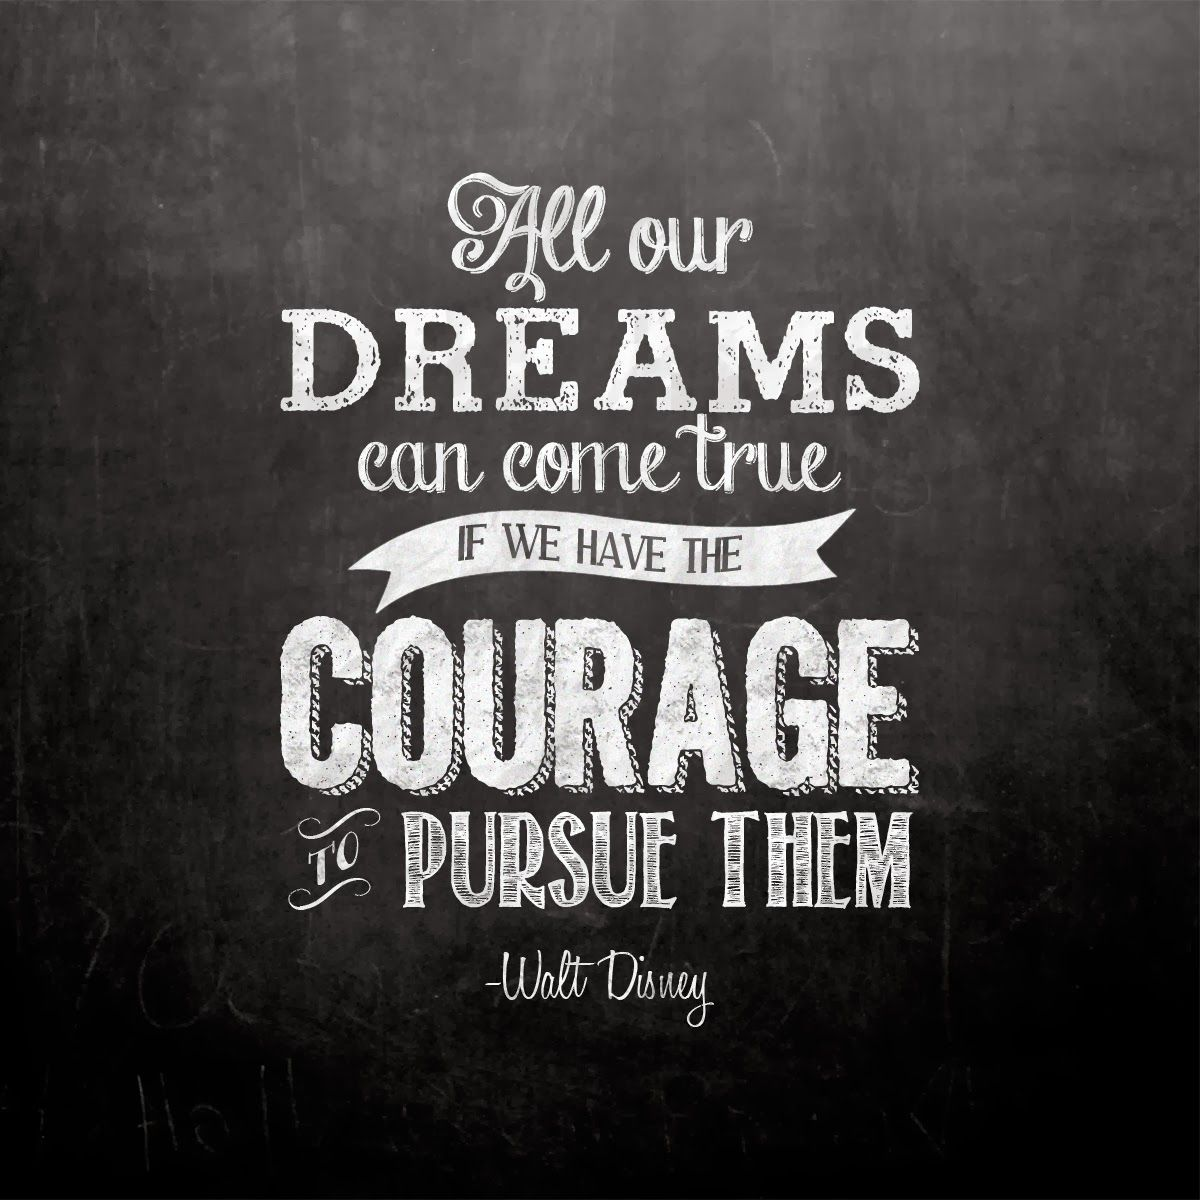 Walt Disney Motivational Quotes Wallpapers Images For Movie TumblrWallpapers